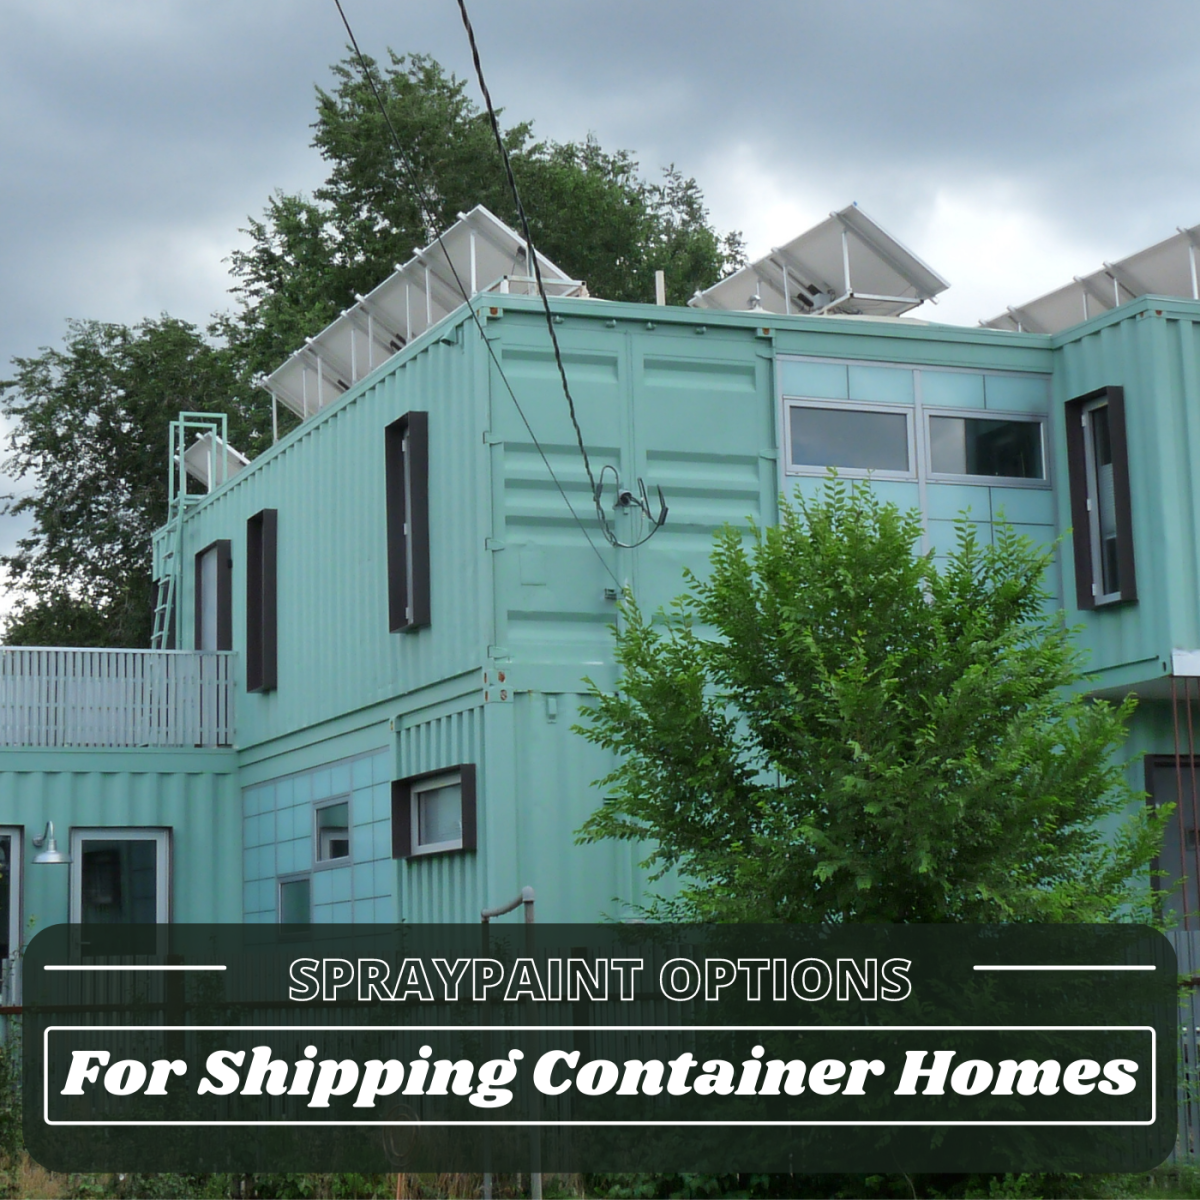 It's important to choose a reliable, durable spraypaint when coating your shipping container home.